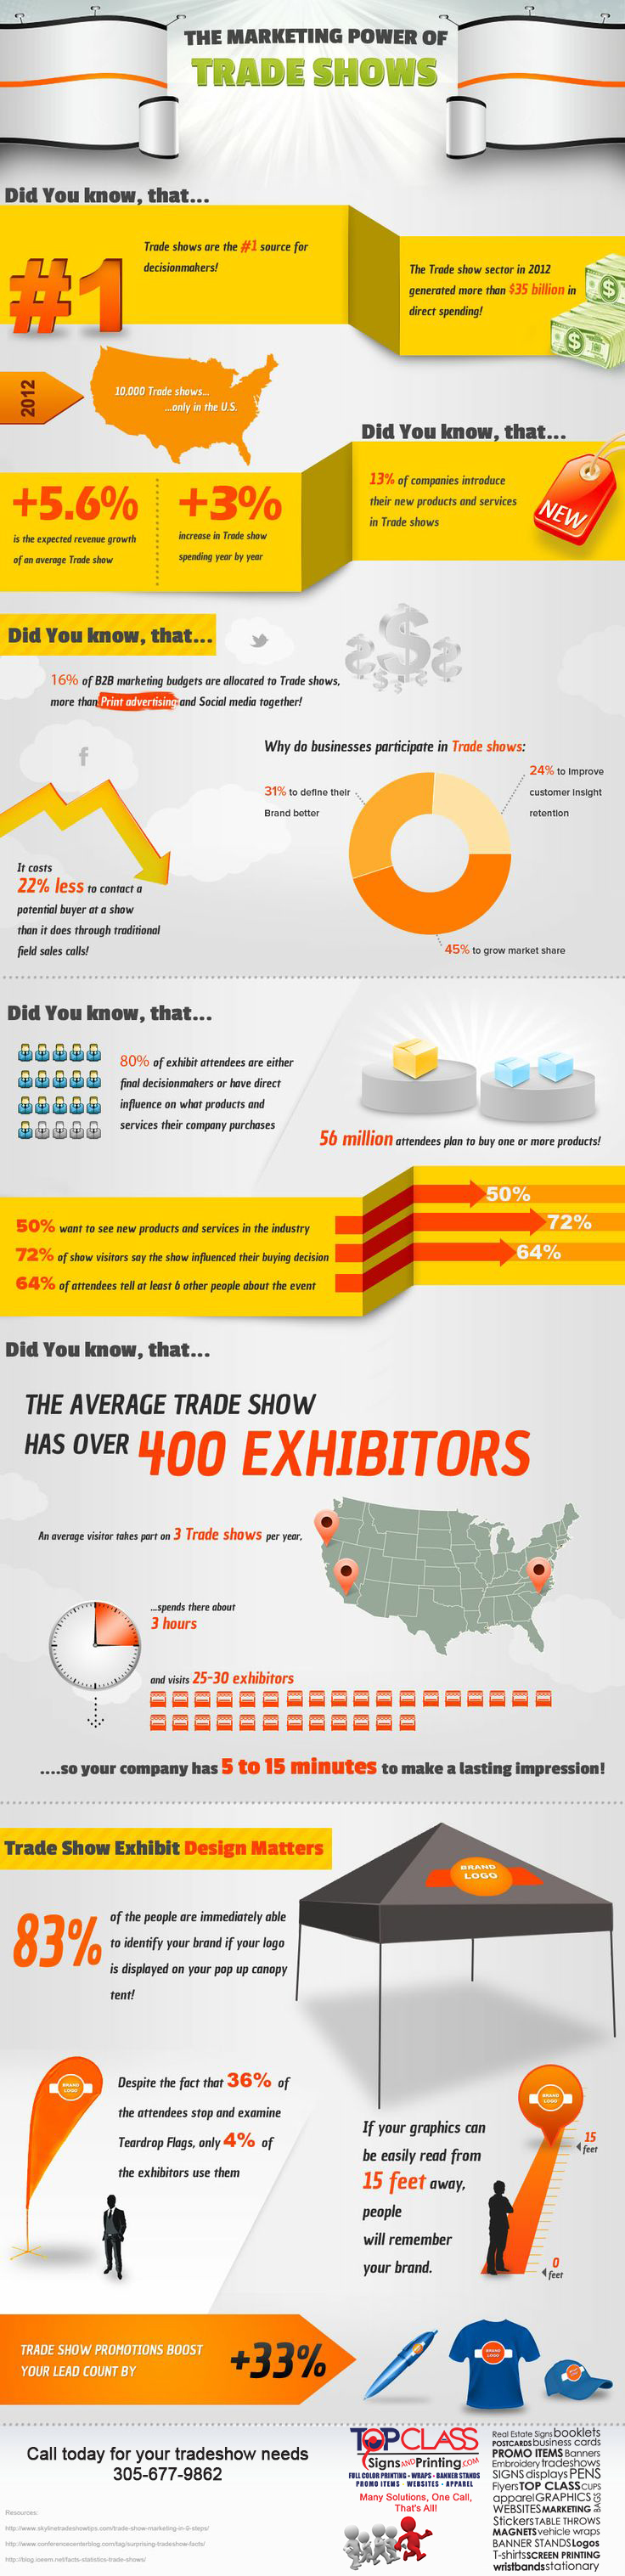 tradeshow-exhibits-and-displays-facts